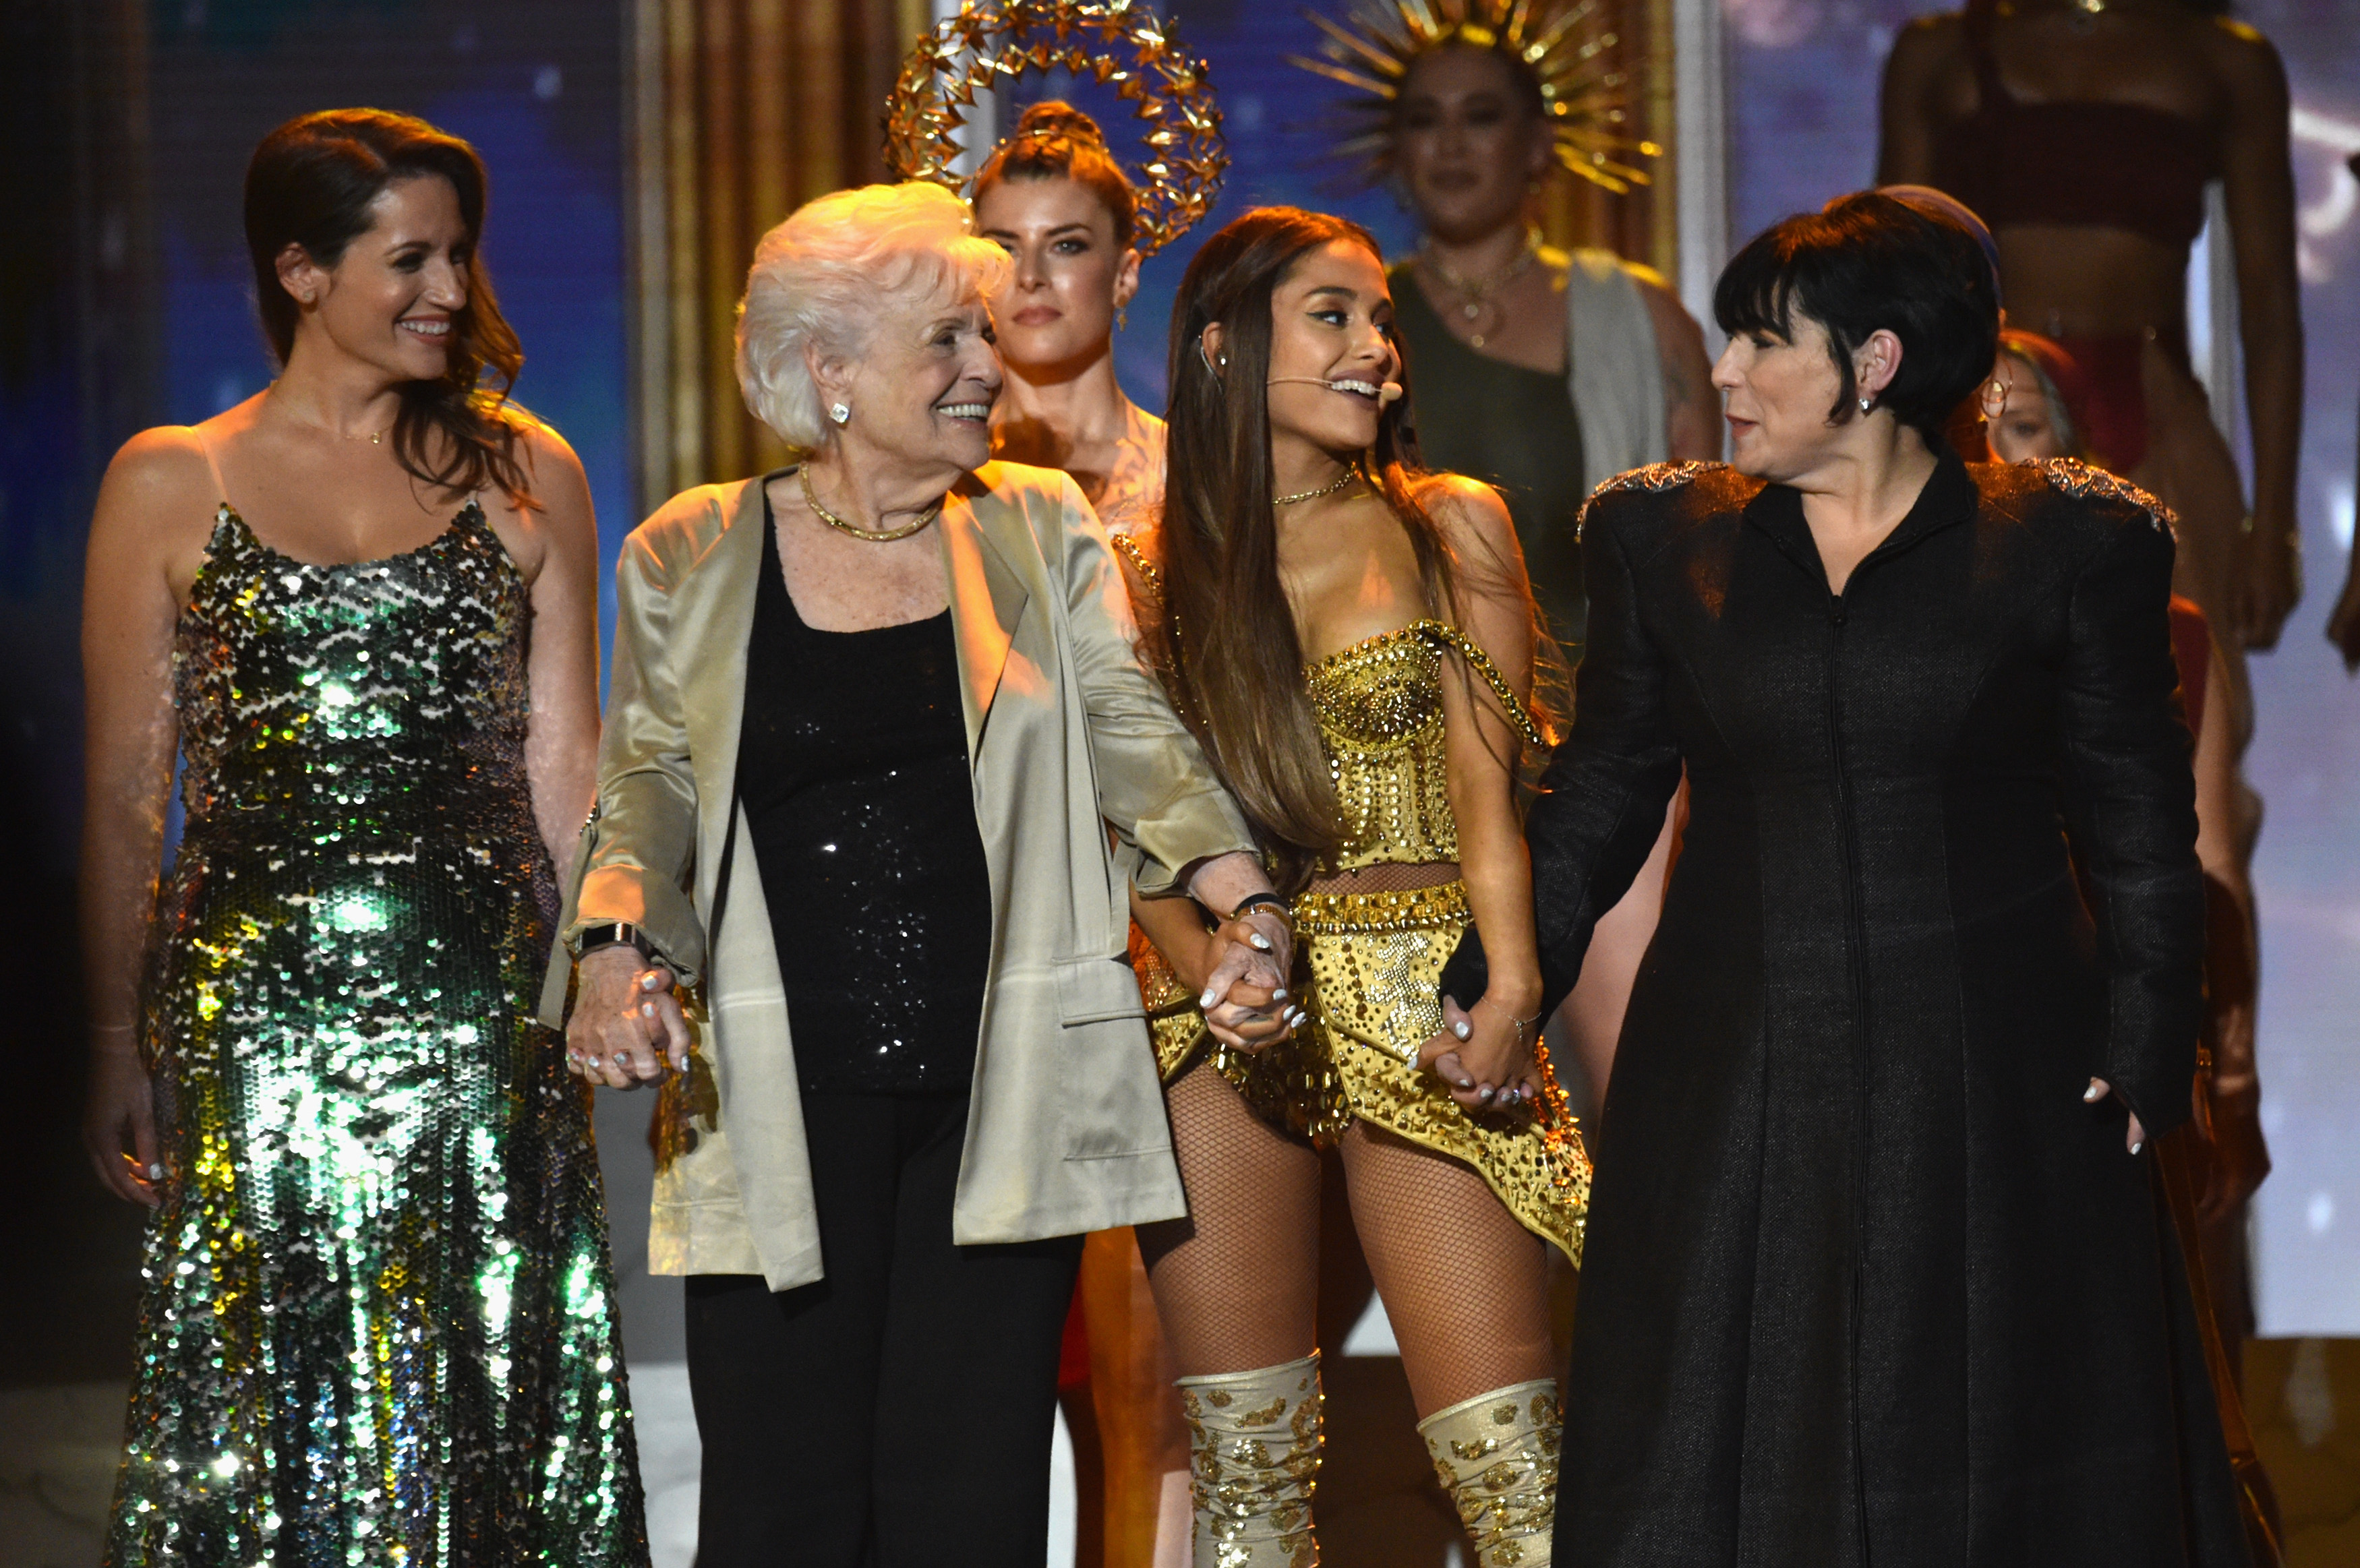 Lani Grande, Marjorie Grande, Ariana Grande, and Joan Grande  onstage during 2018 MTV Video Music Awards at Radio City Music Hall on August 20, 2018 in New York City.